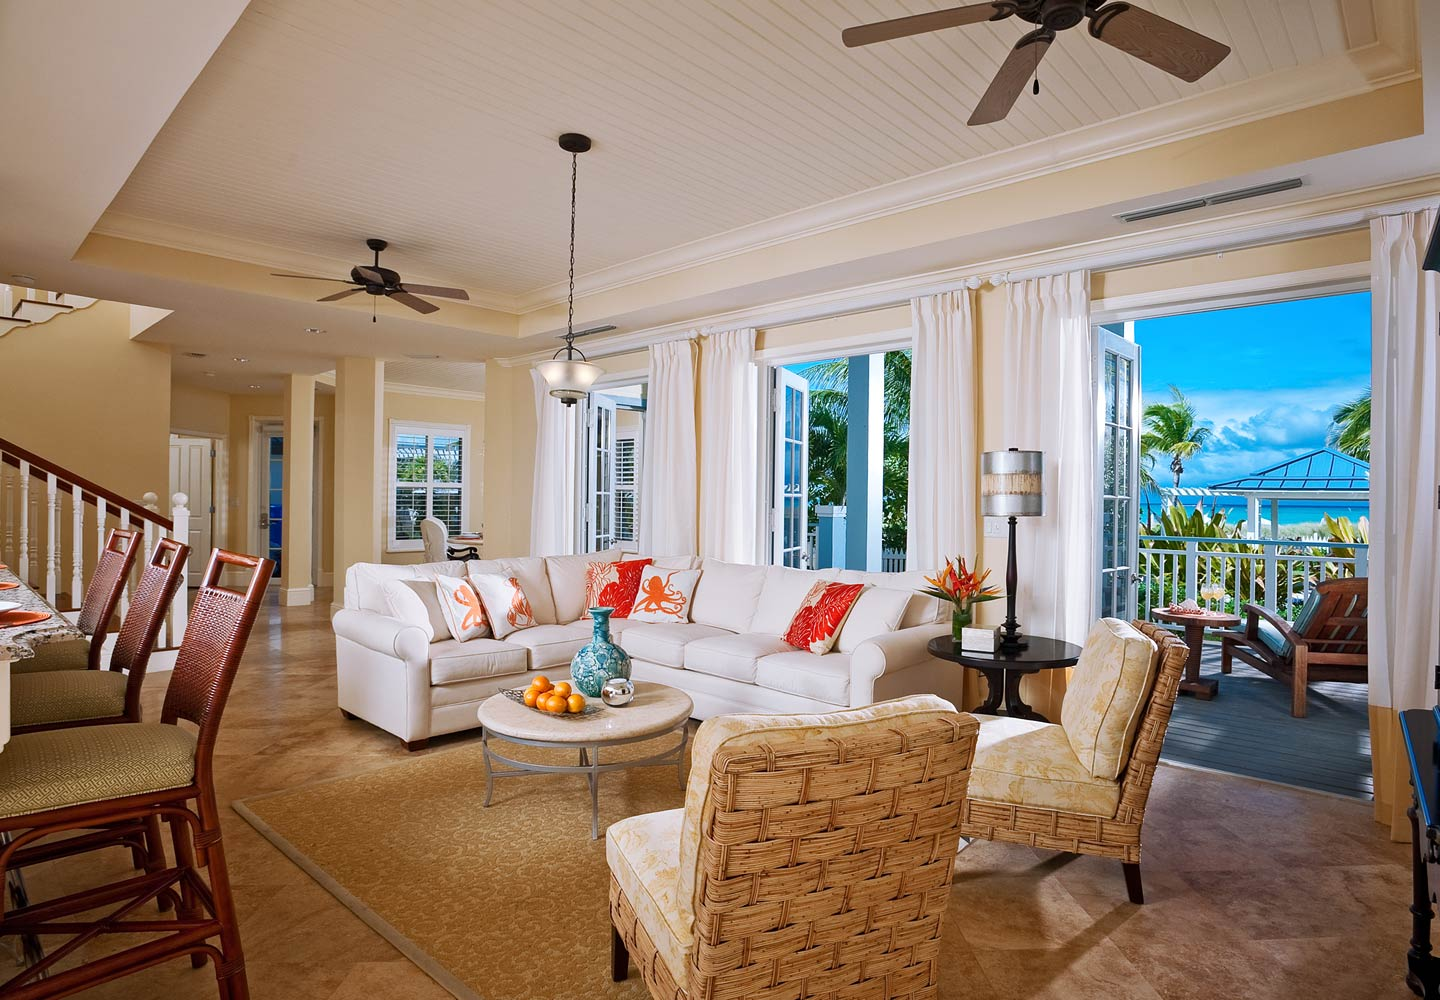 Luxury Rooms  Suites at Our AllInclusive Resorts  Beaches